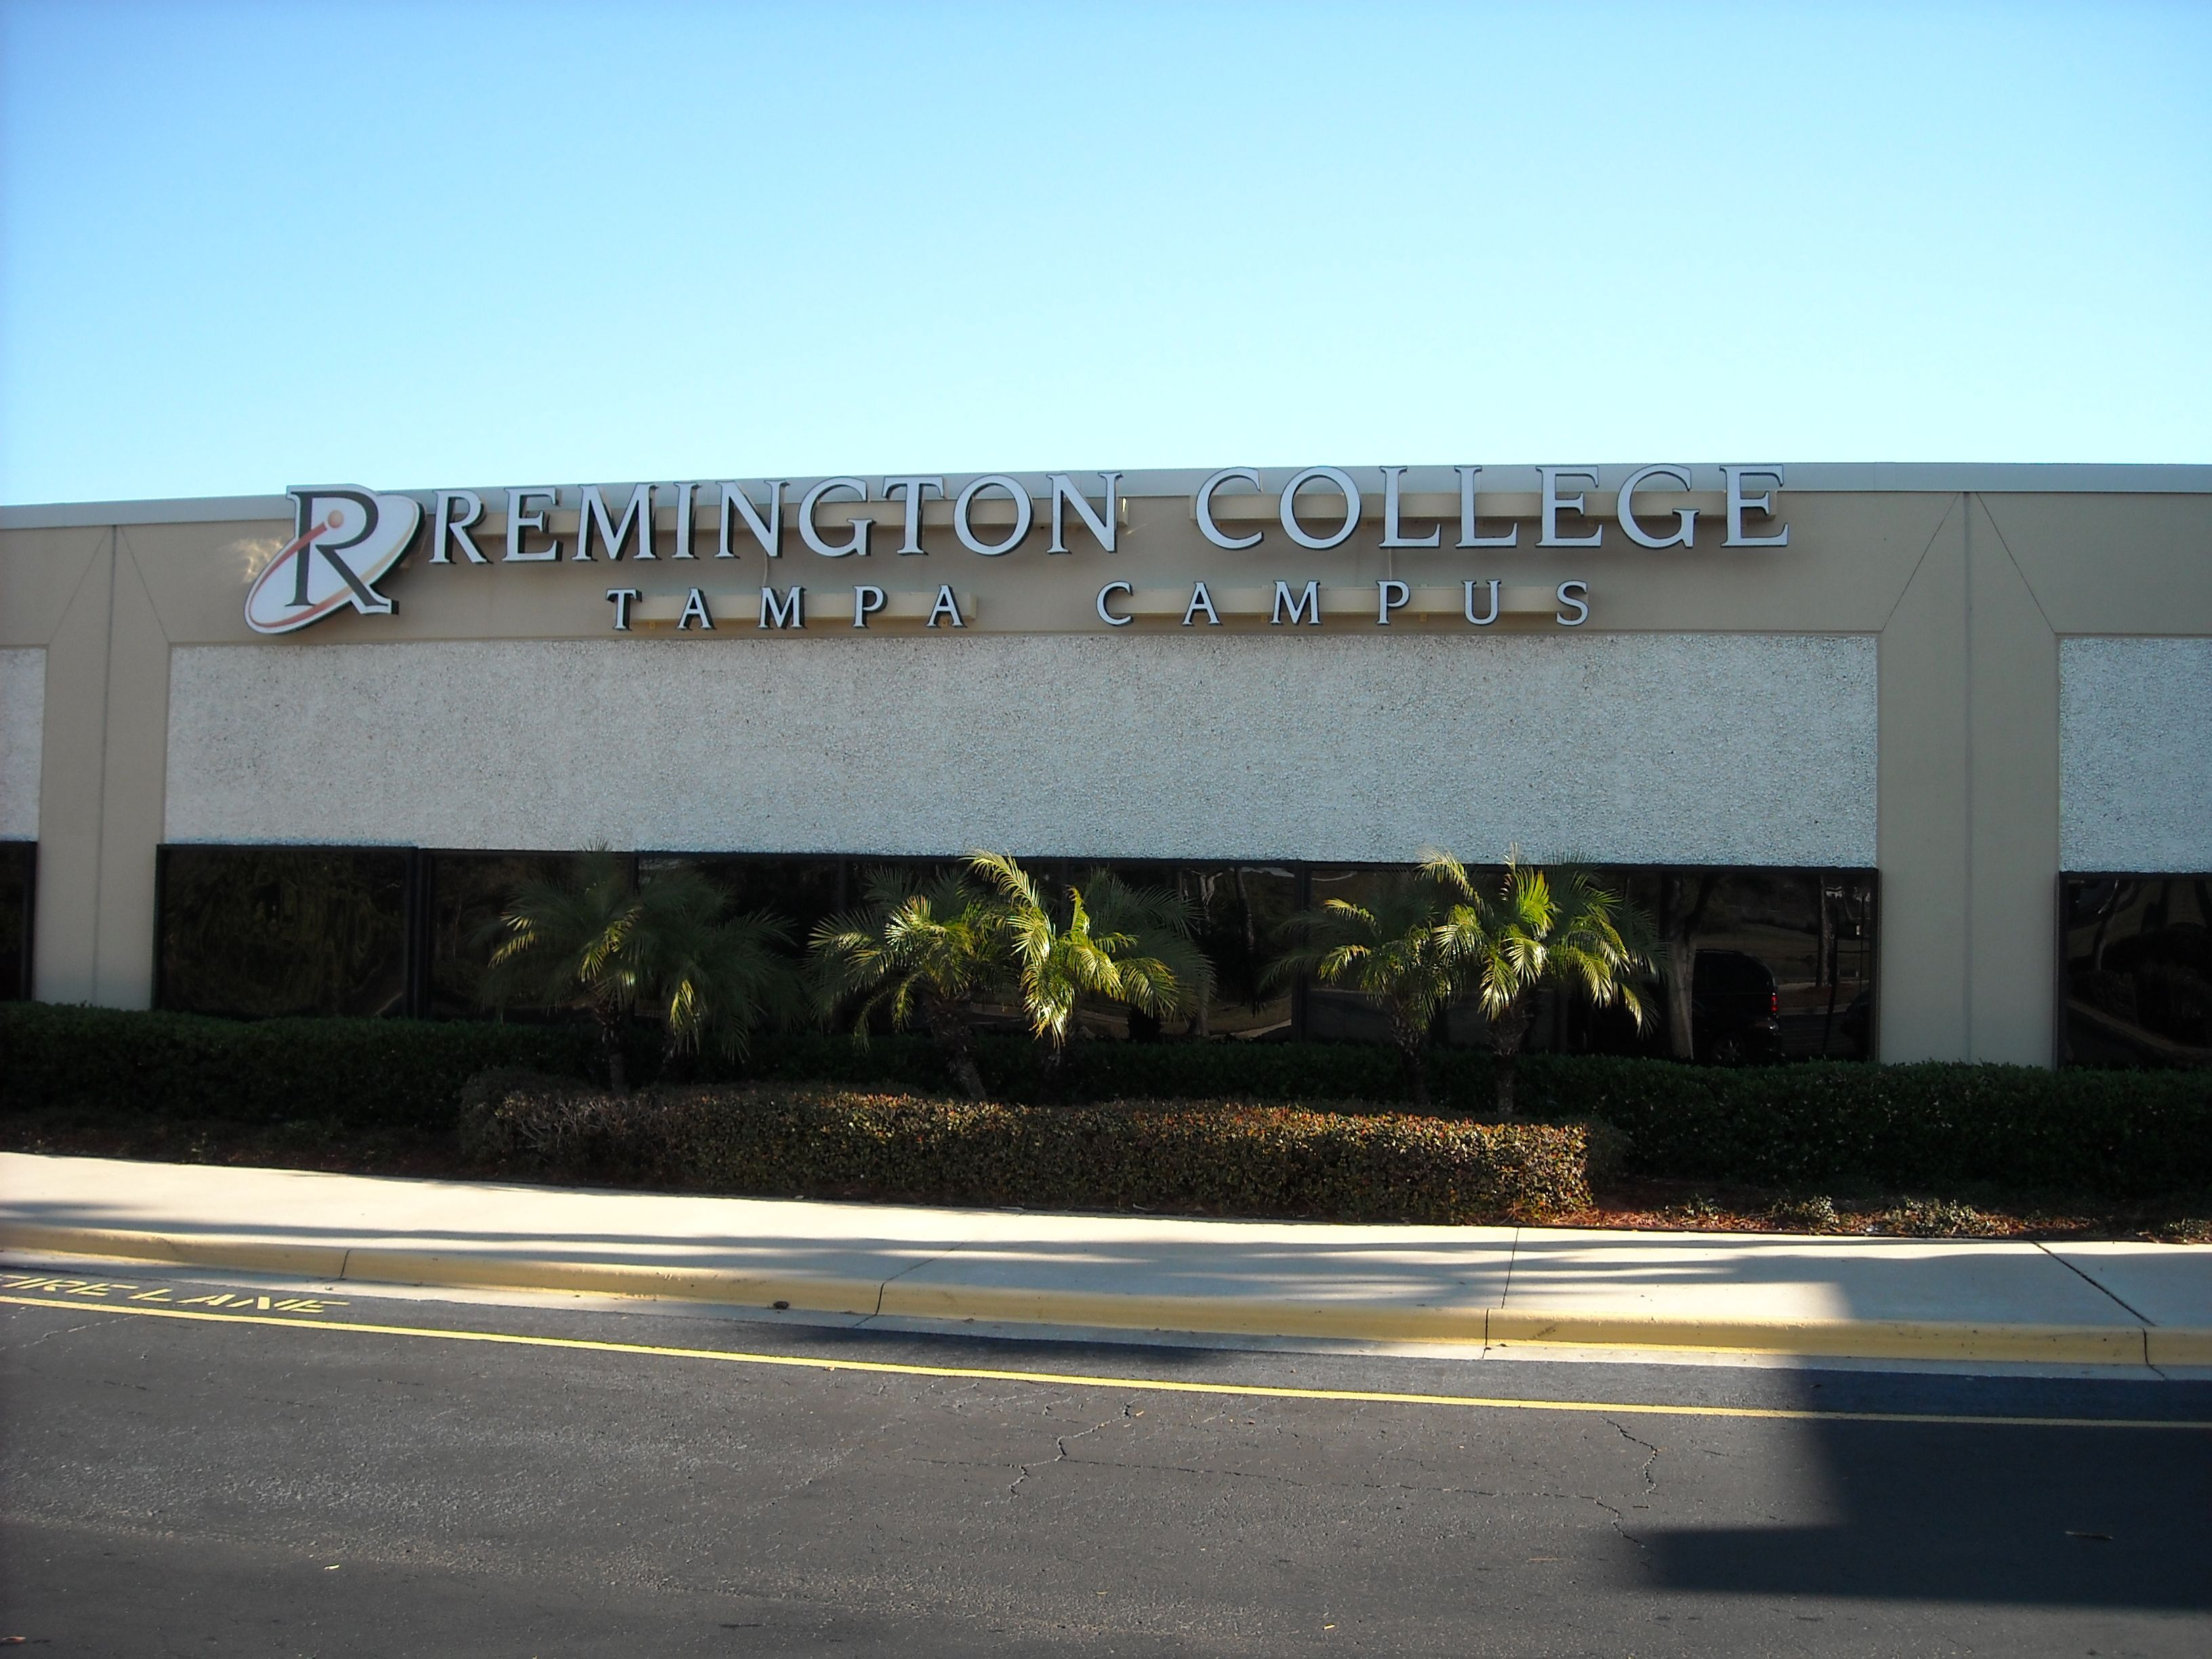 Pin on Remington College Campuses